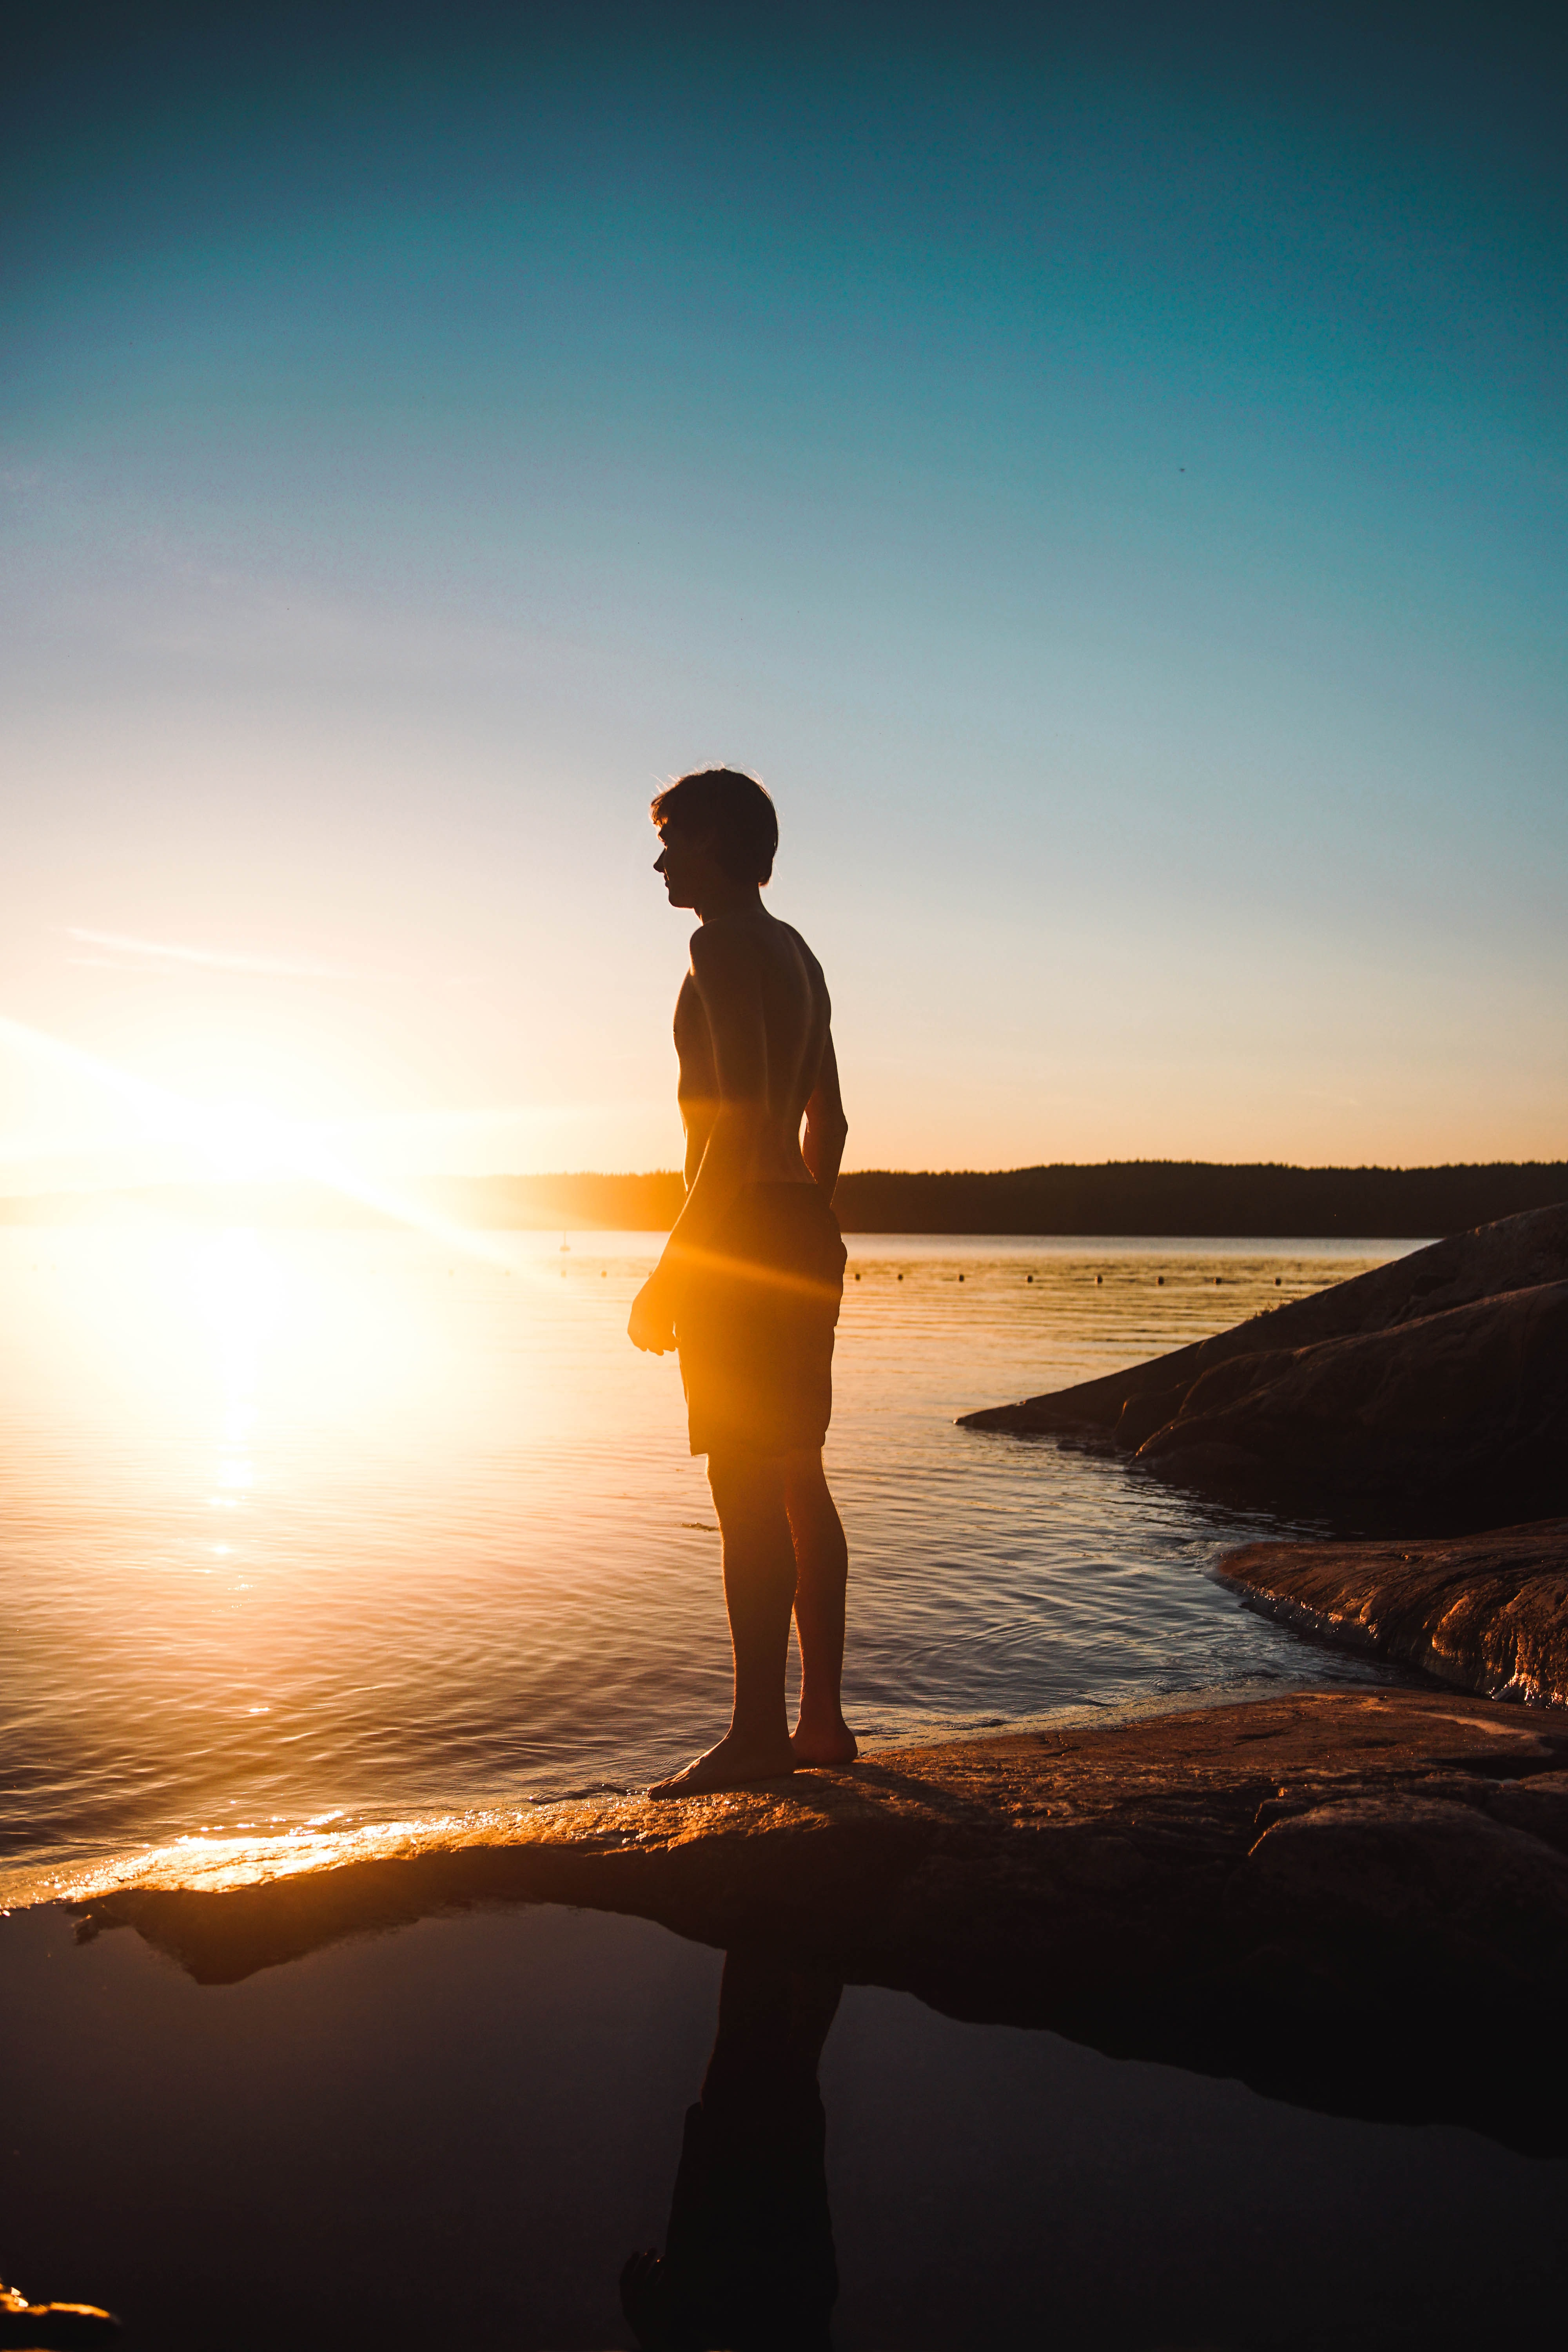 man standing on rock besides body of water during sunset